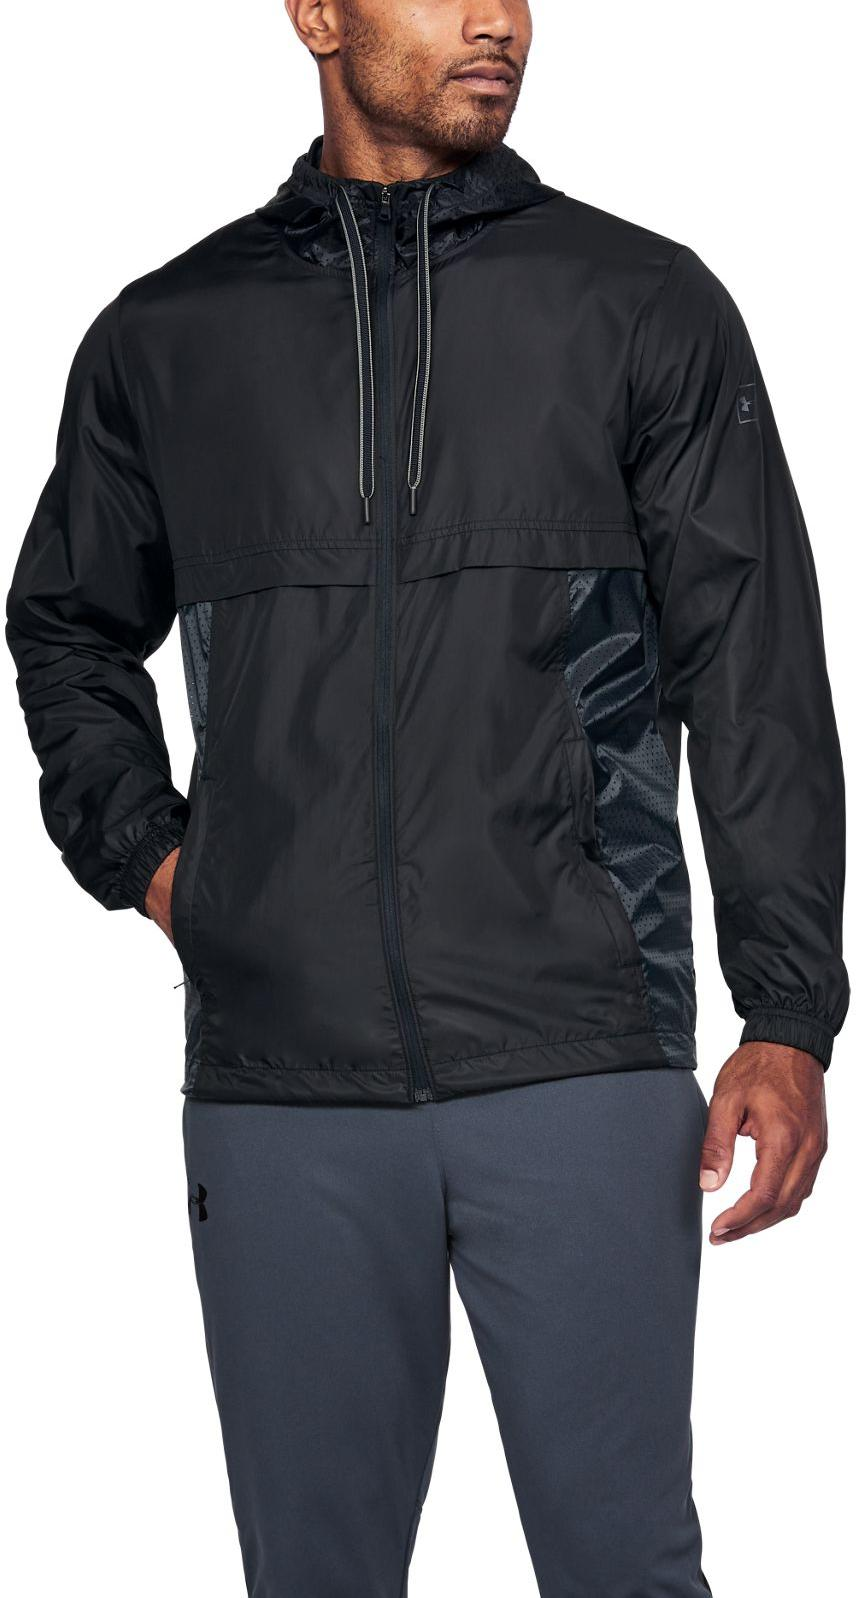 Pánská bunda s kapucí Under Armour Sportstyle Windbreaker